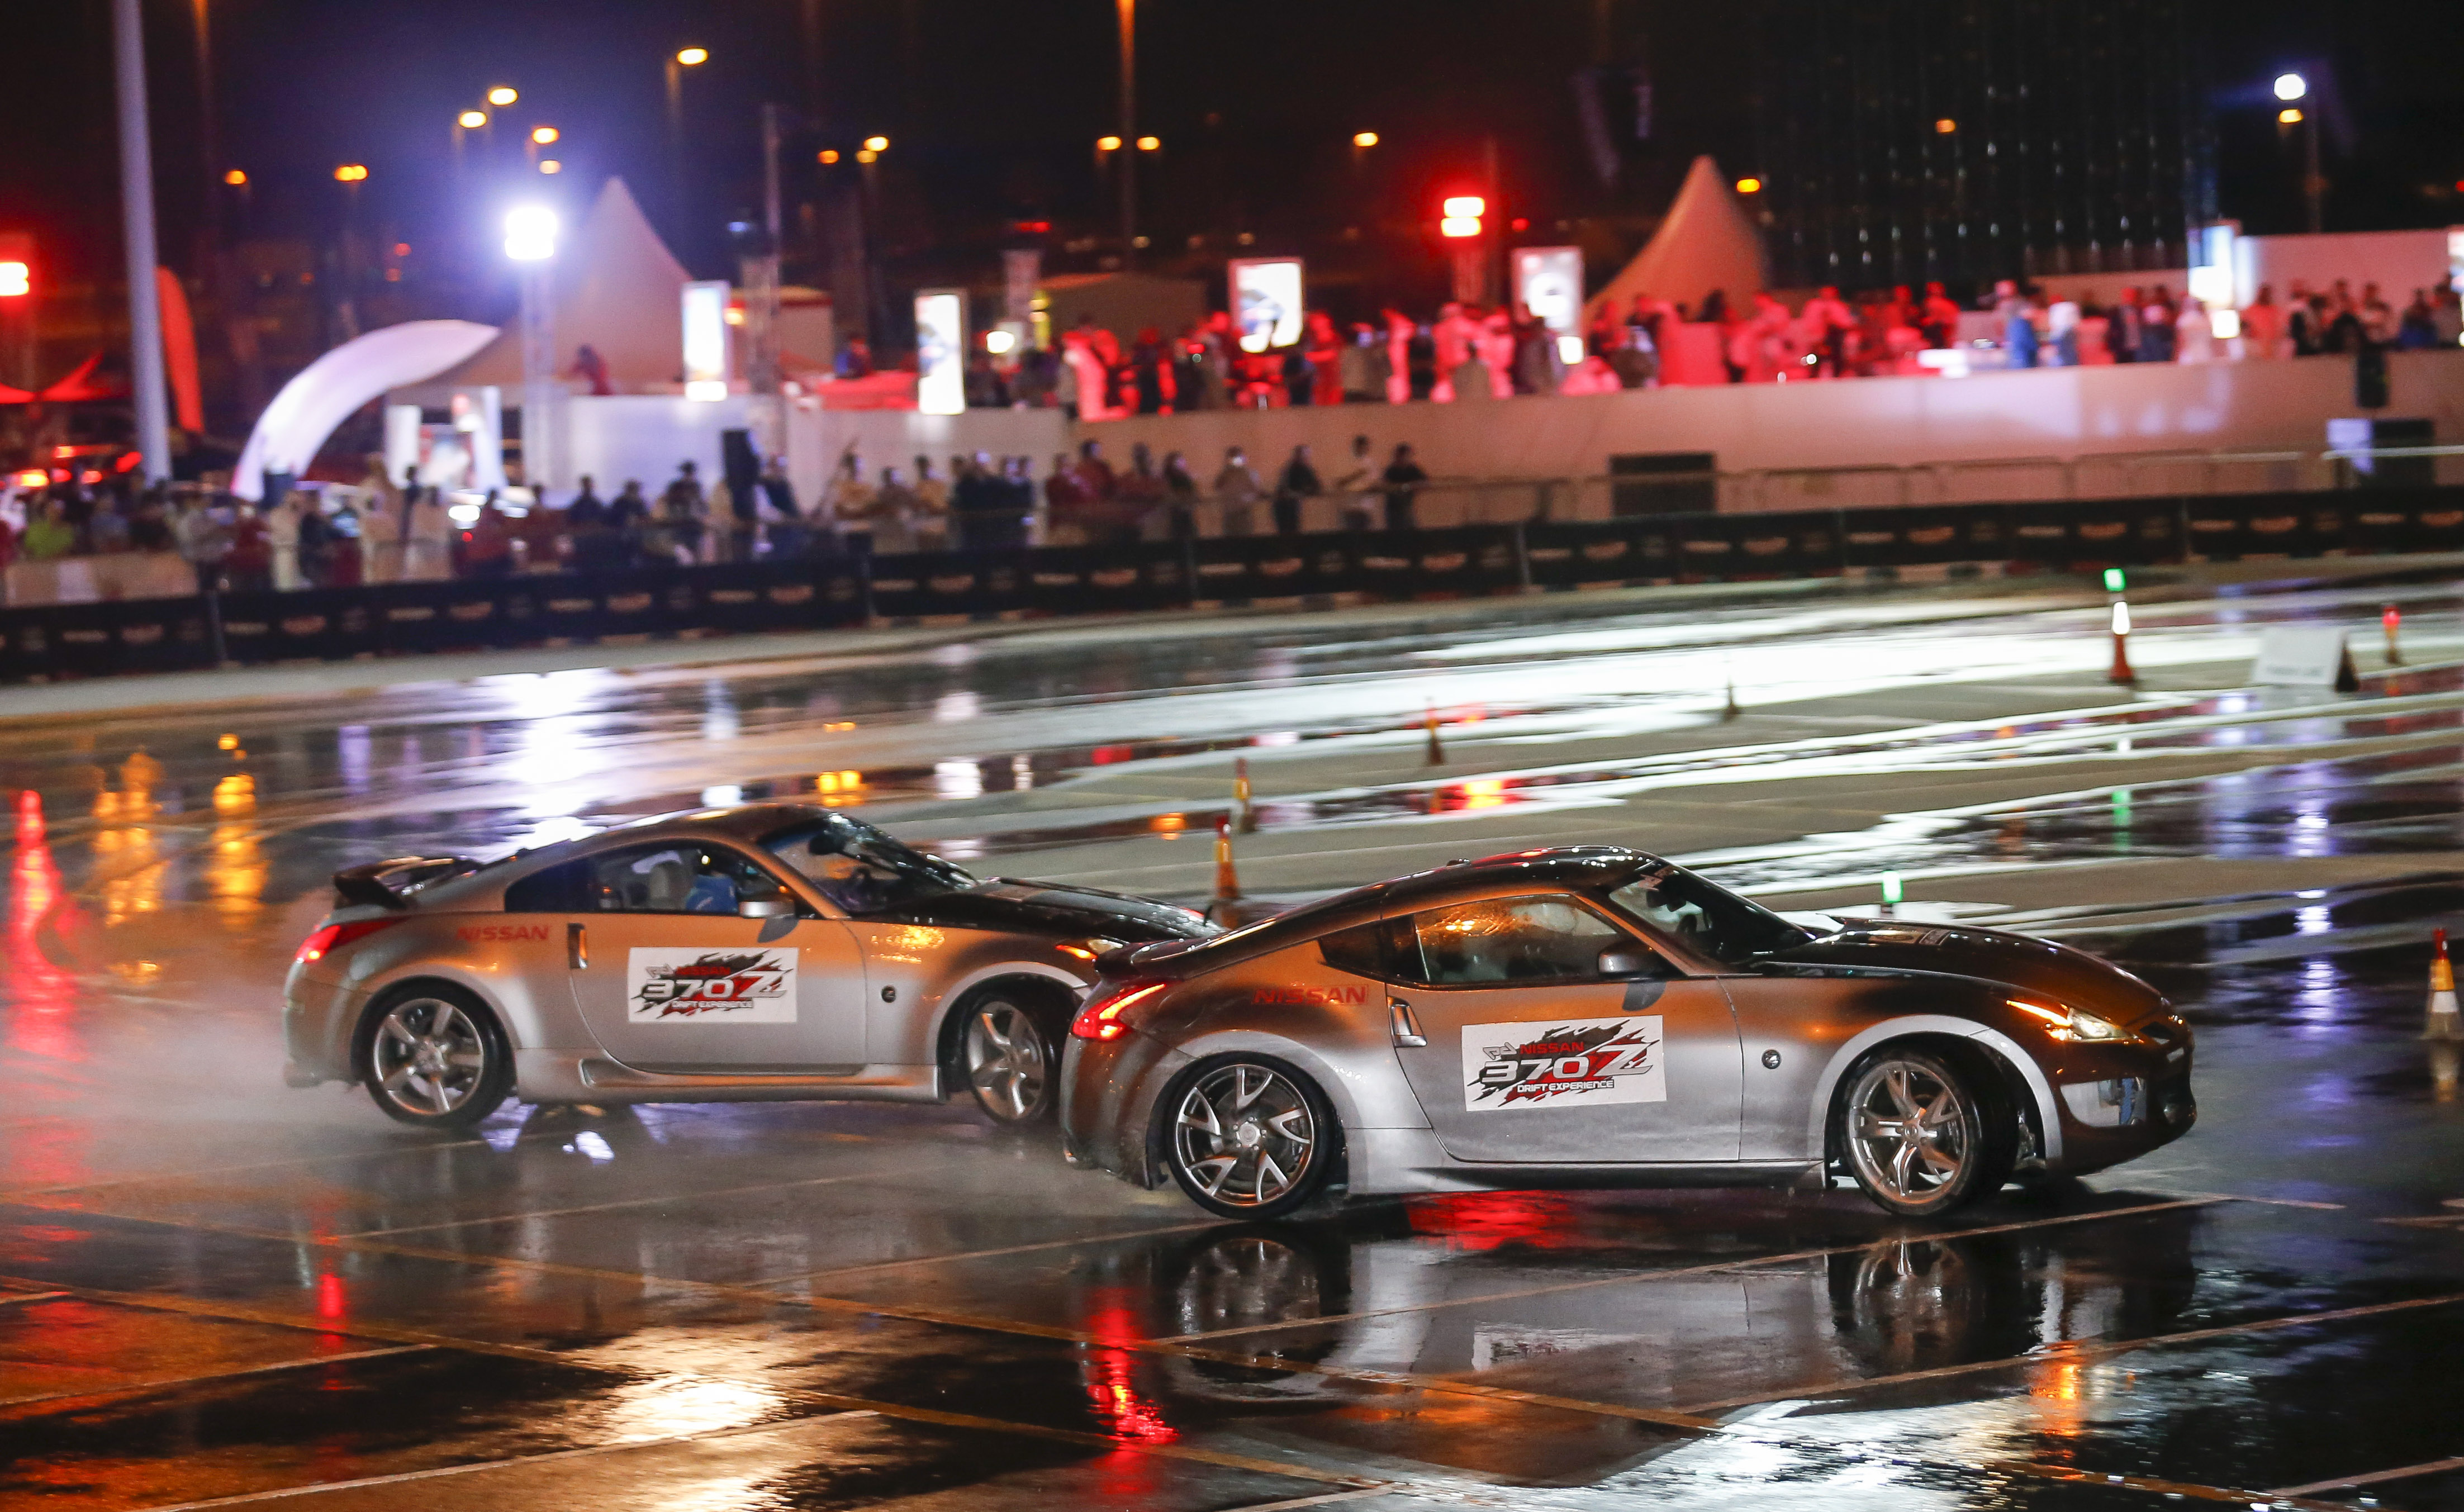 Video: Nissan and Prodrift Academy set new twin vehicle drift record in Dubai